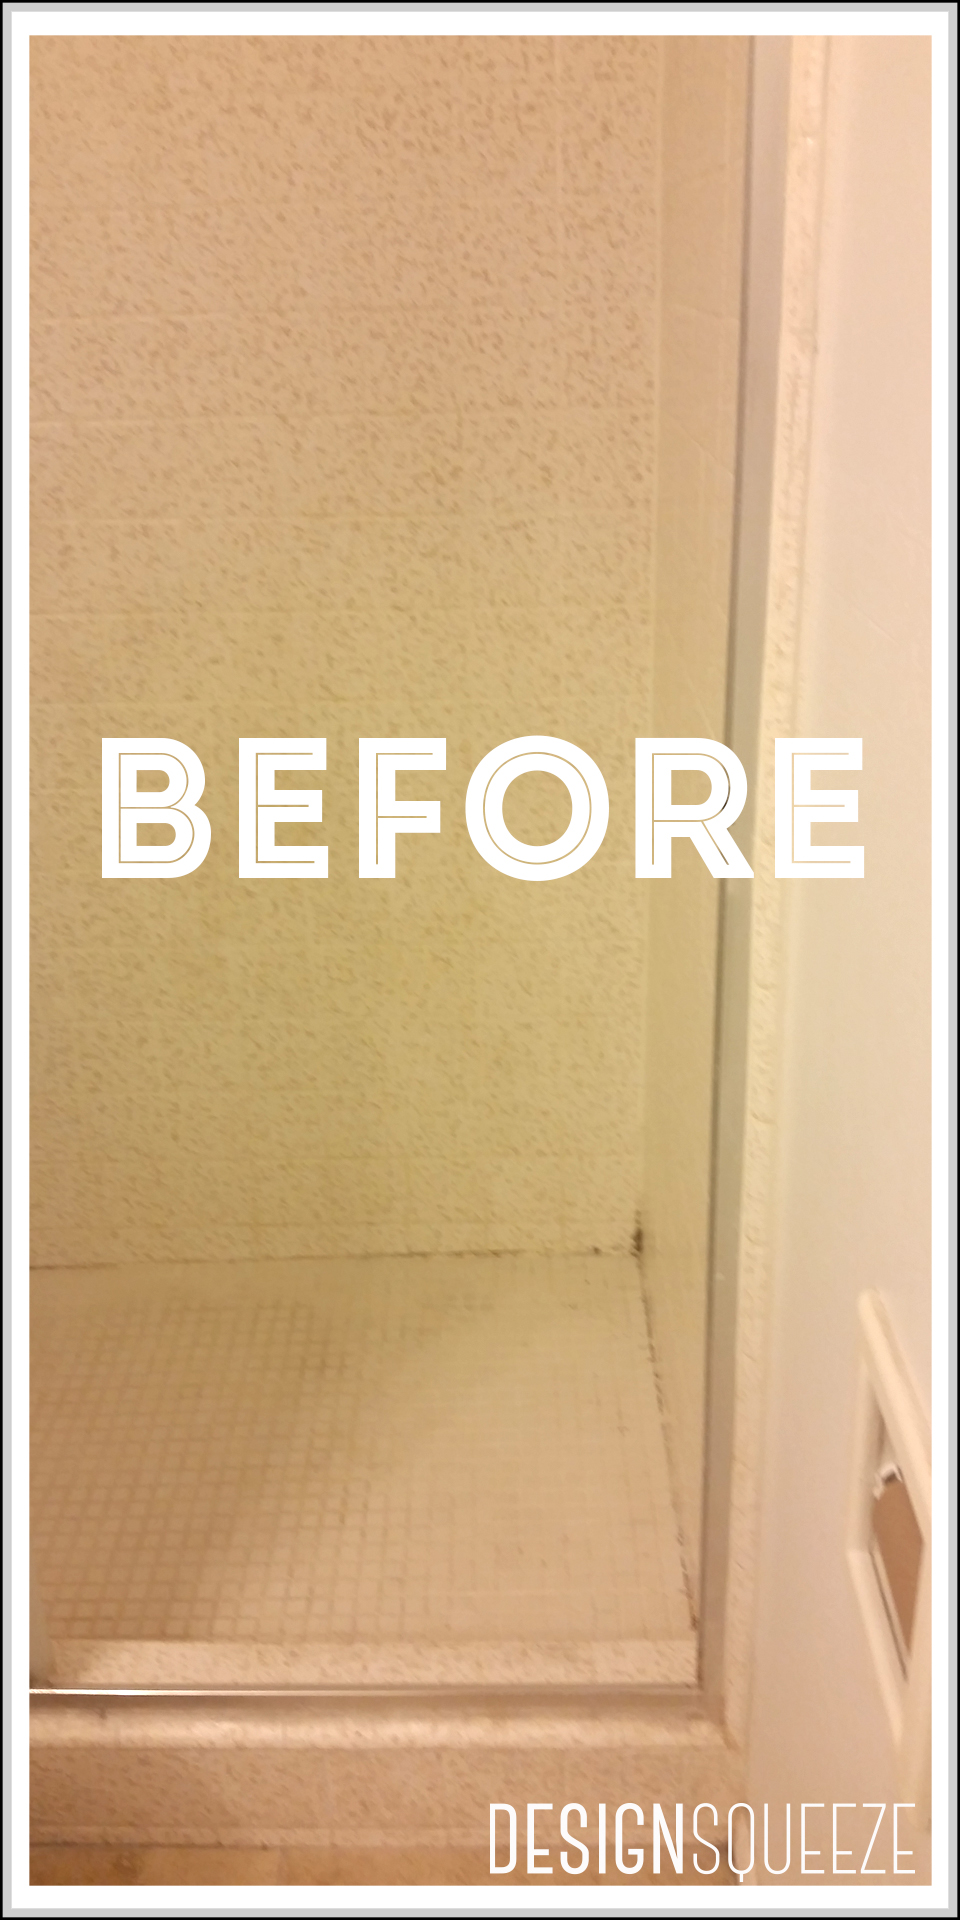 mmmm black mold, we're not gonna miss you.